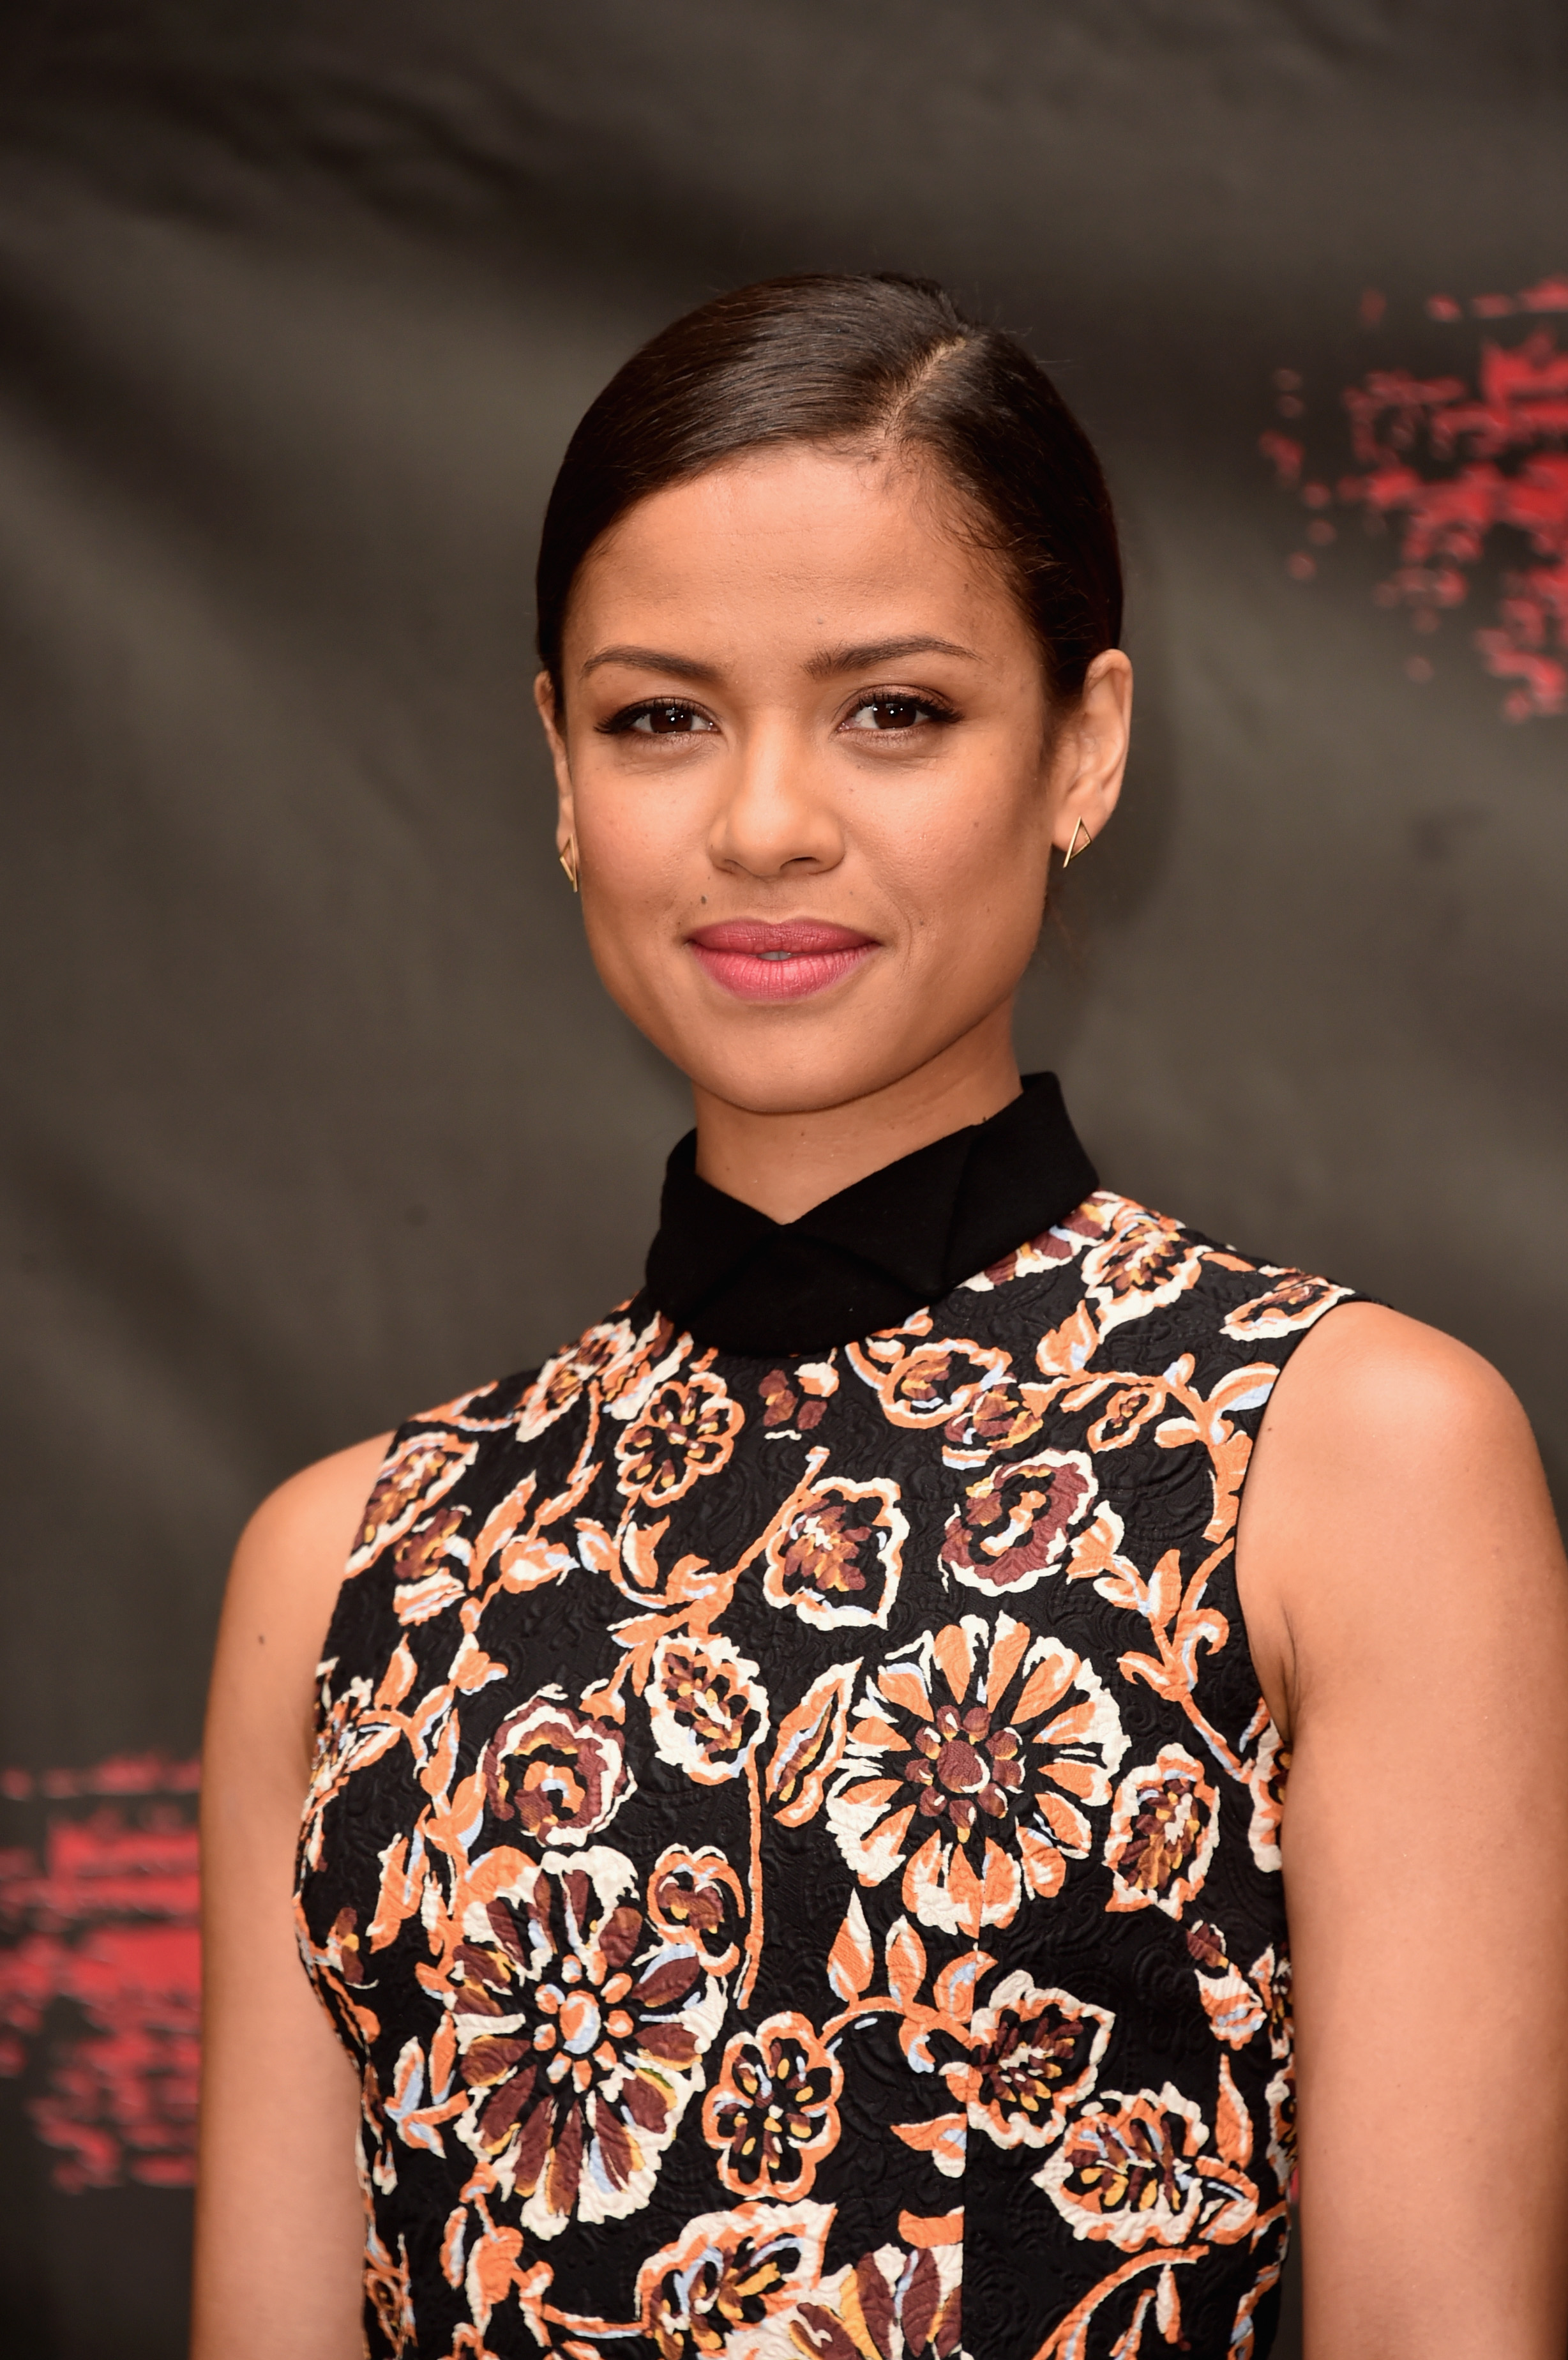 Gugu Mbatha-Raw attends the photo call for  Free State Of Jones  at on May 11, 2016 in Los Angeles, California.